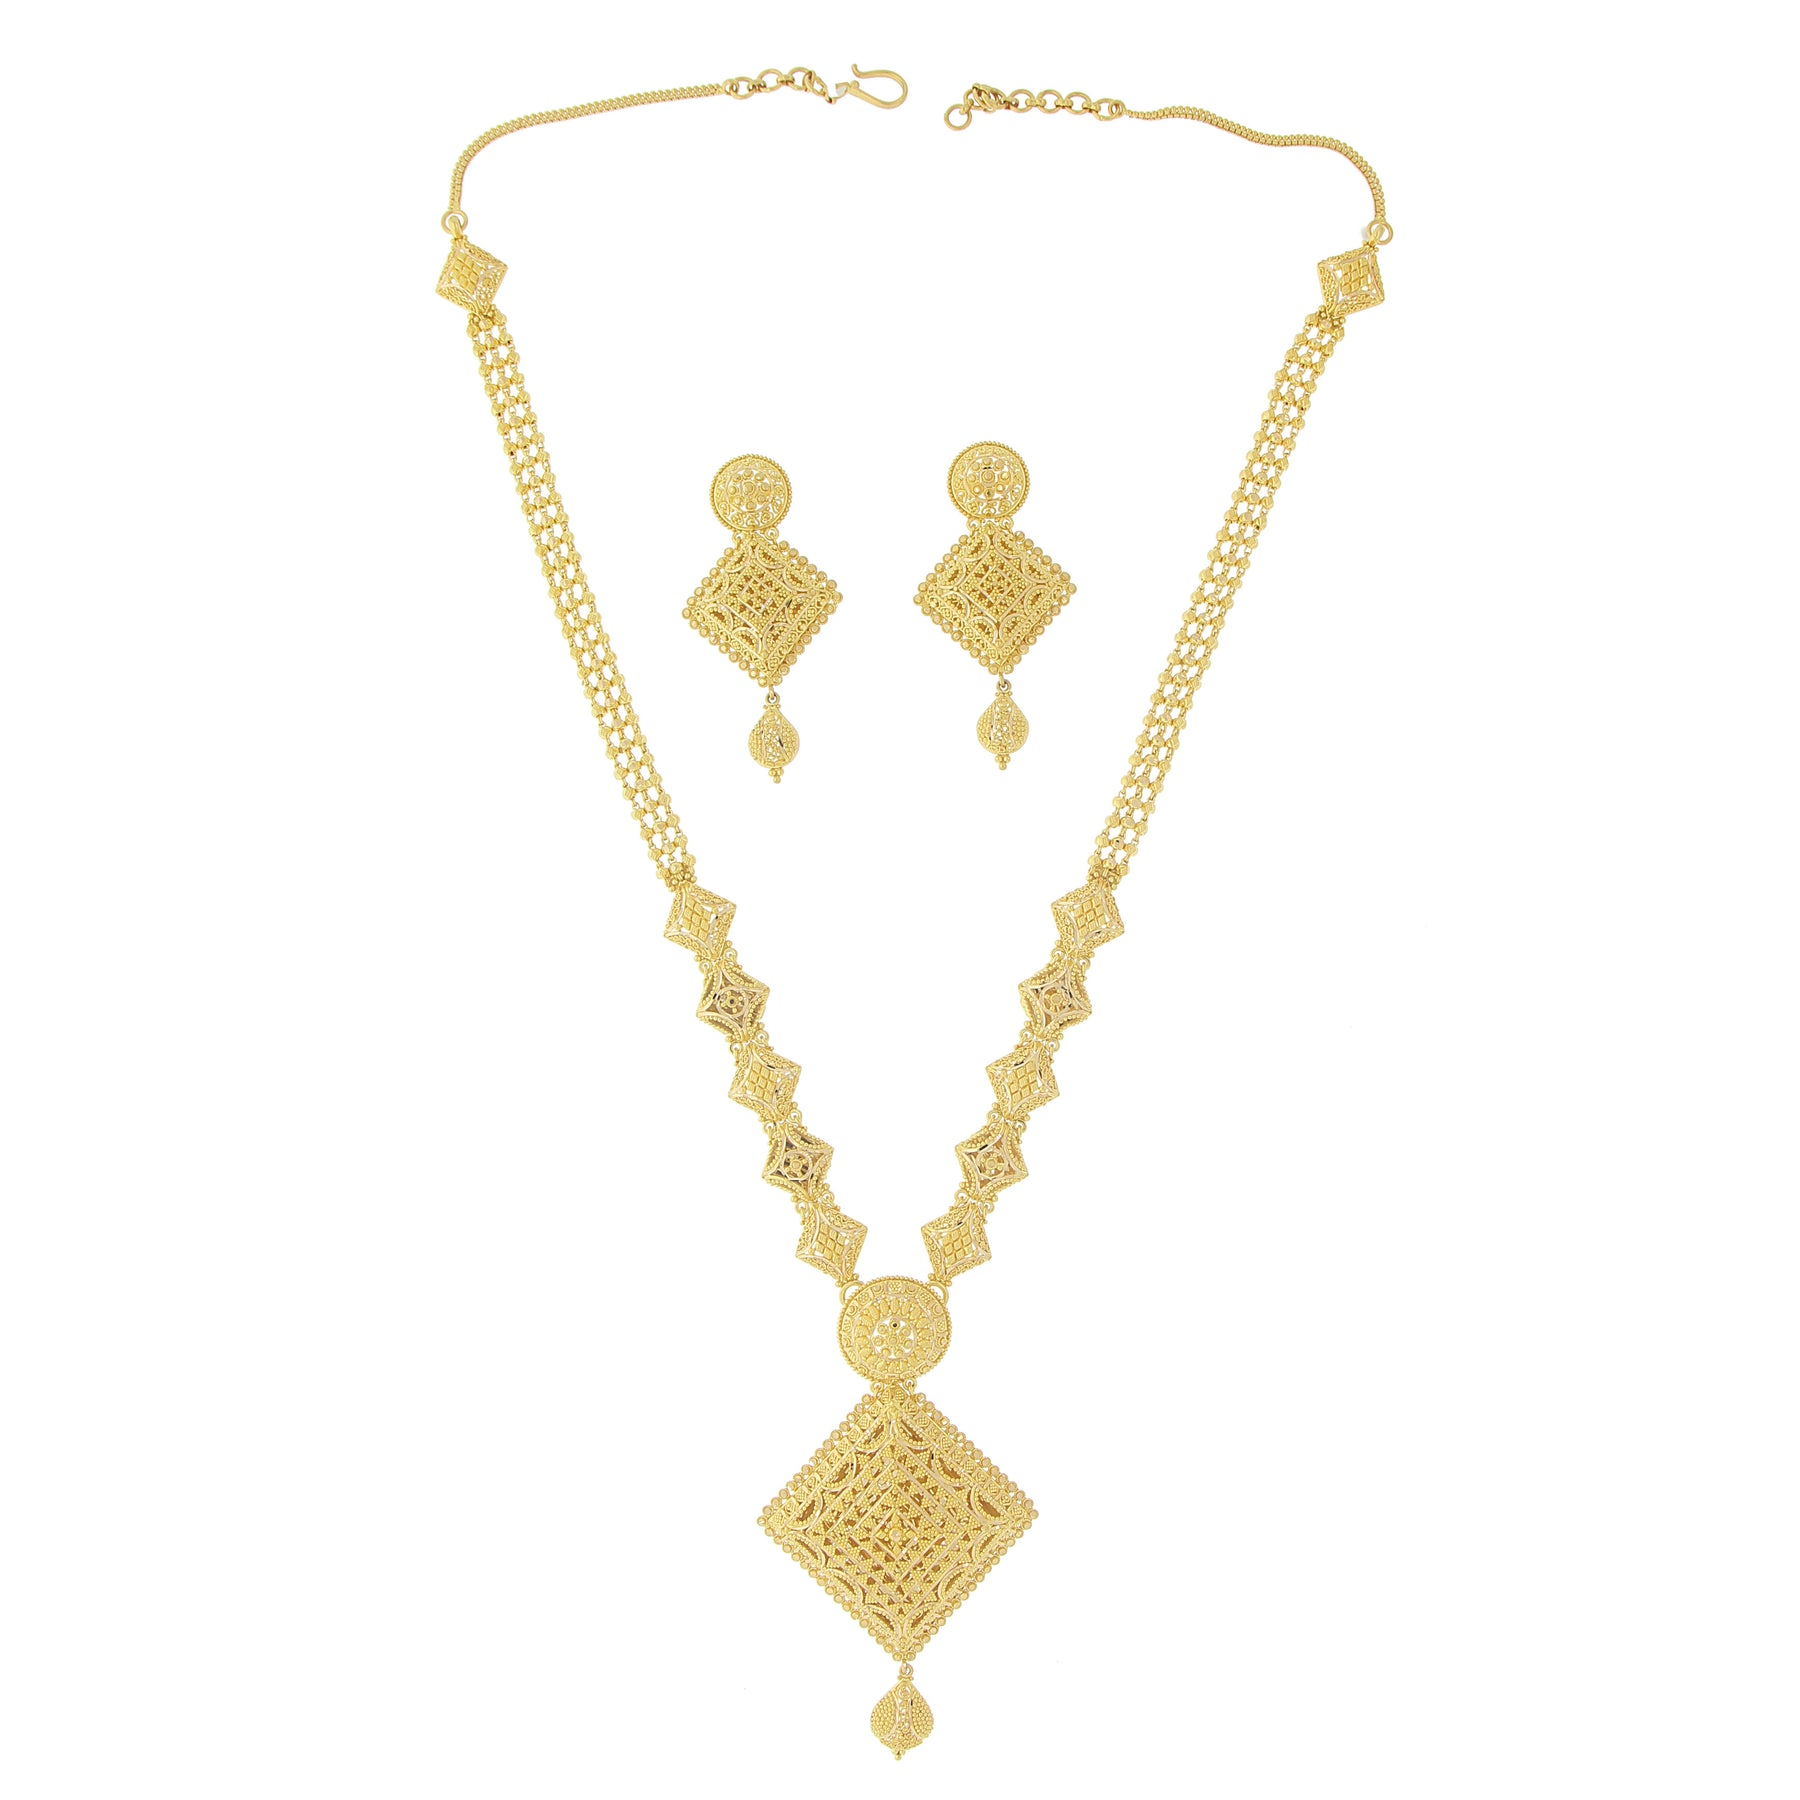 cdn gold number prod with src medium yellow image p necklace detailed egemsinc com netdna charm gemaffair